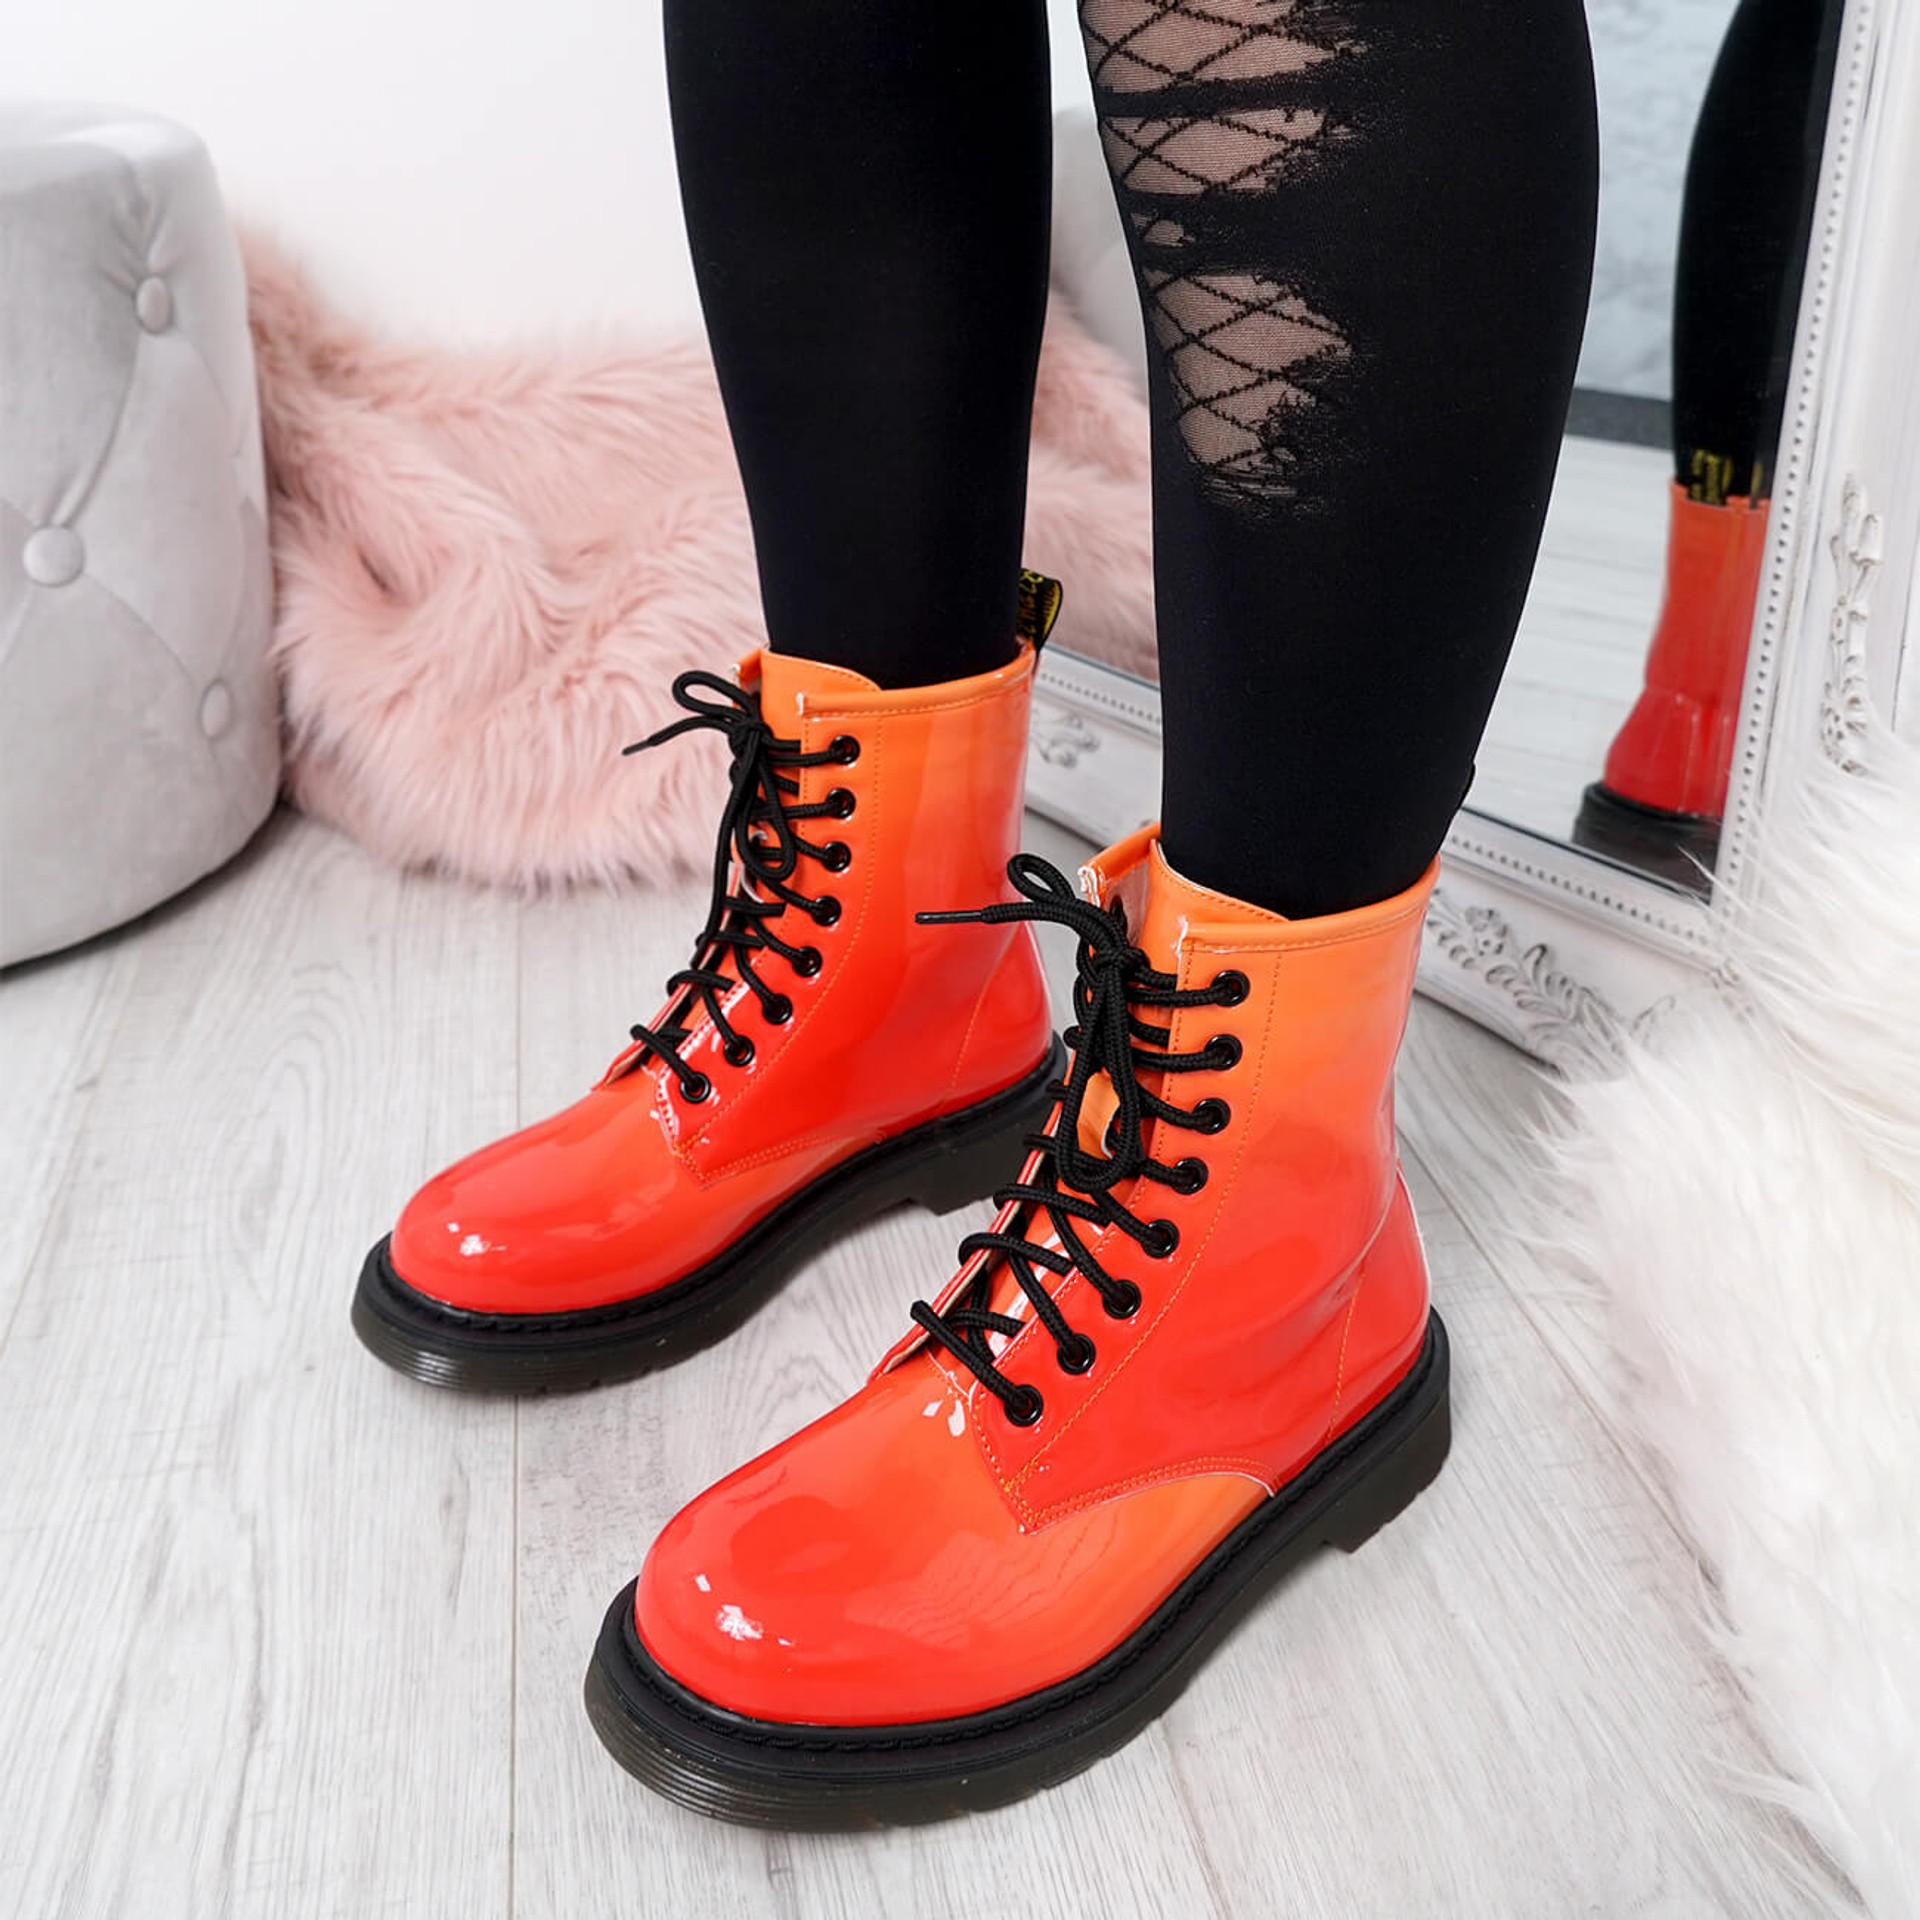 Seda Yellow Patent Ankle Boots